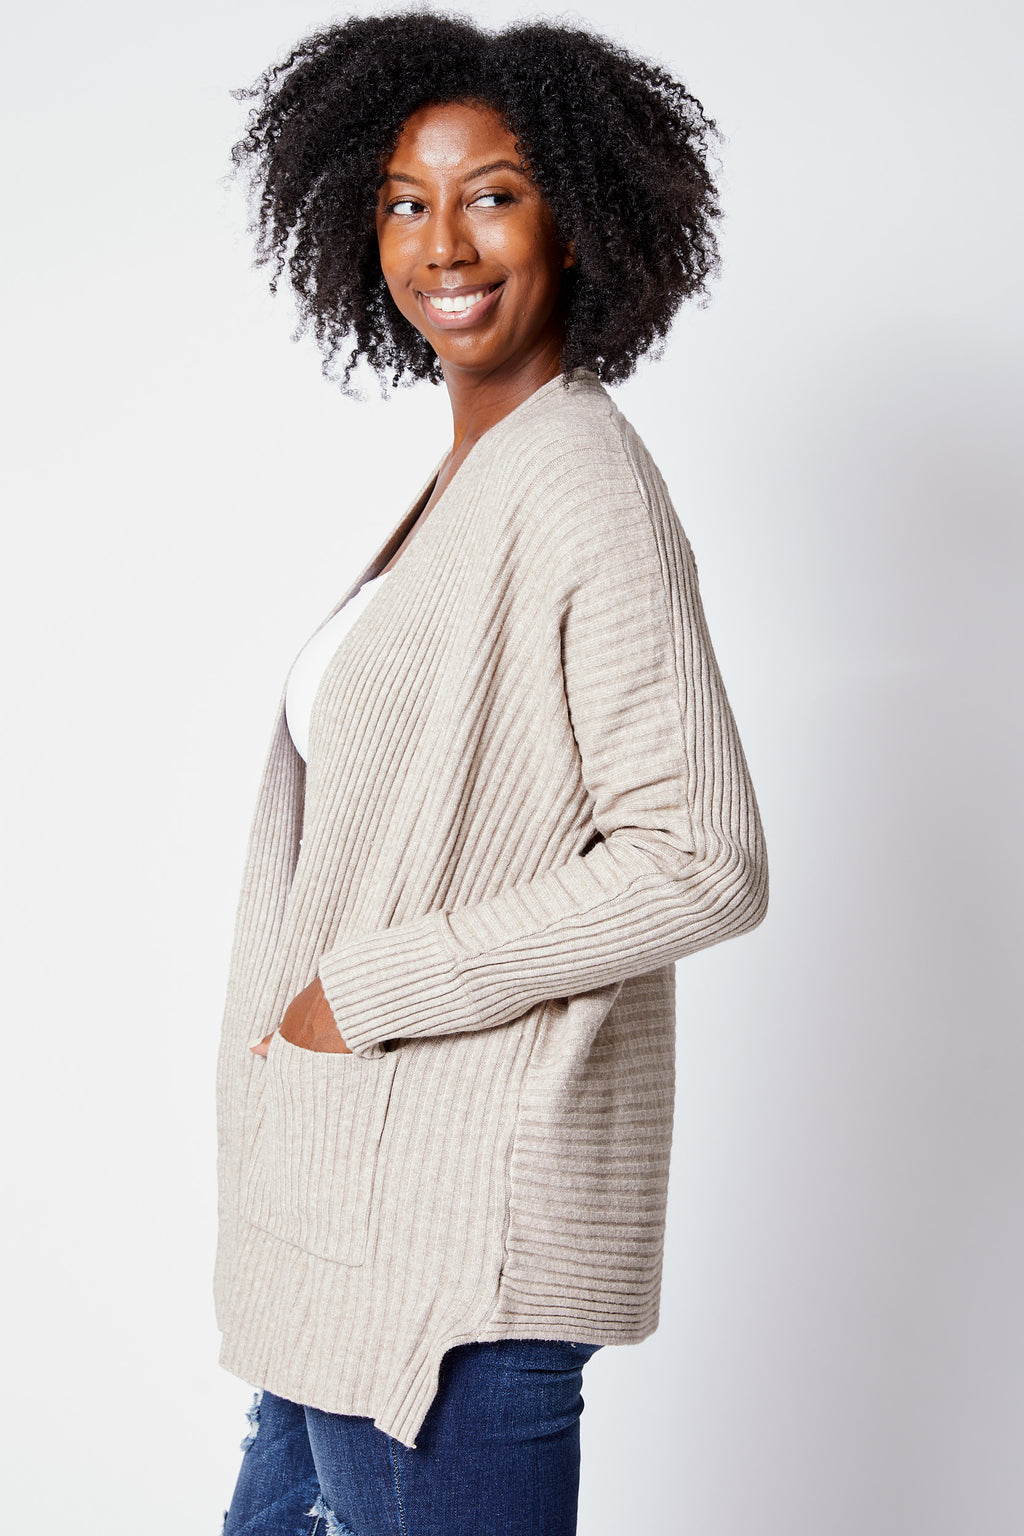 Cardigan w/ Pocket - Jacqueline B Clothing